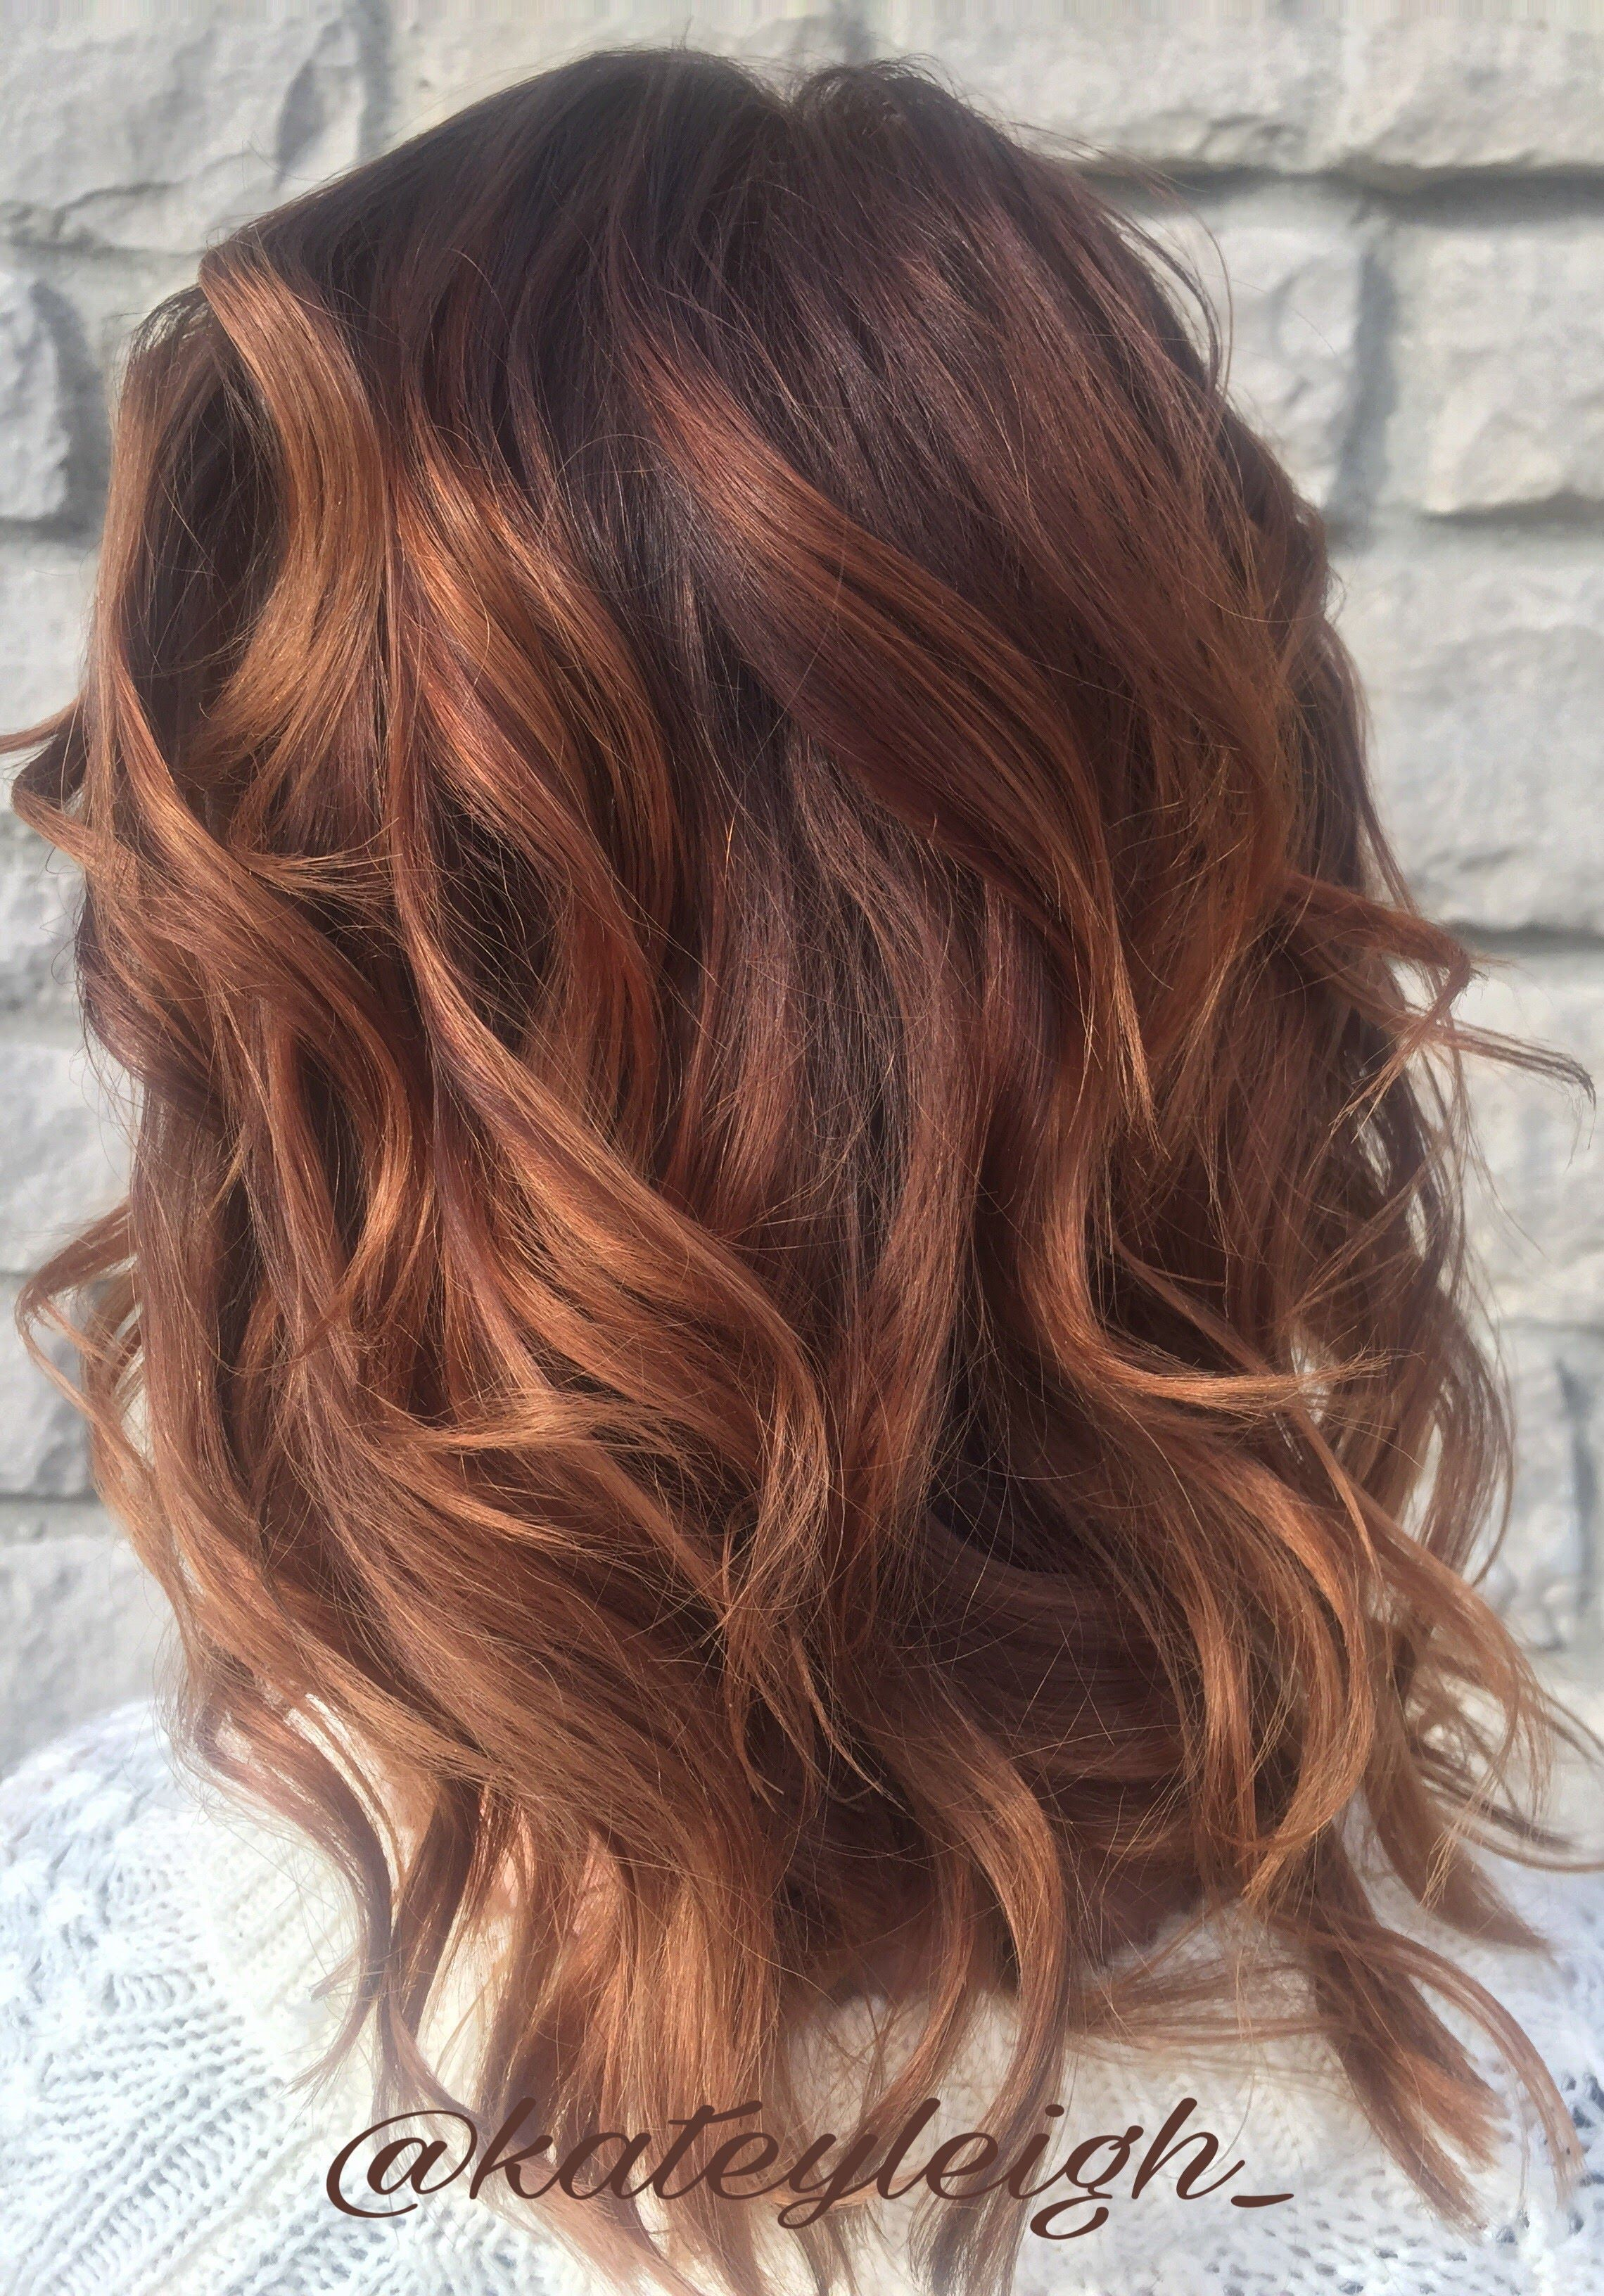 Red Bases For Living Room Decor: Rose Gold Balayage On A Base Of Red Hair Using Pravana